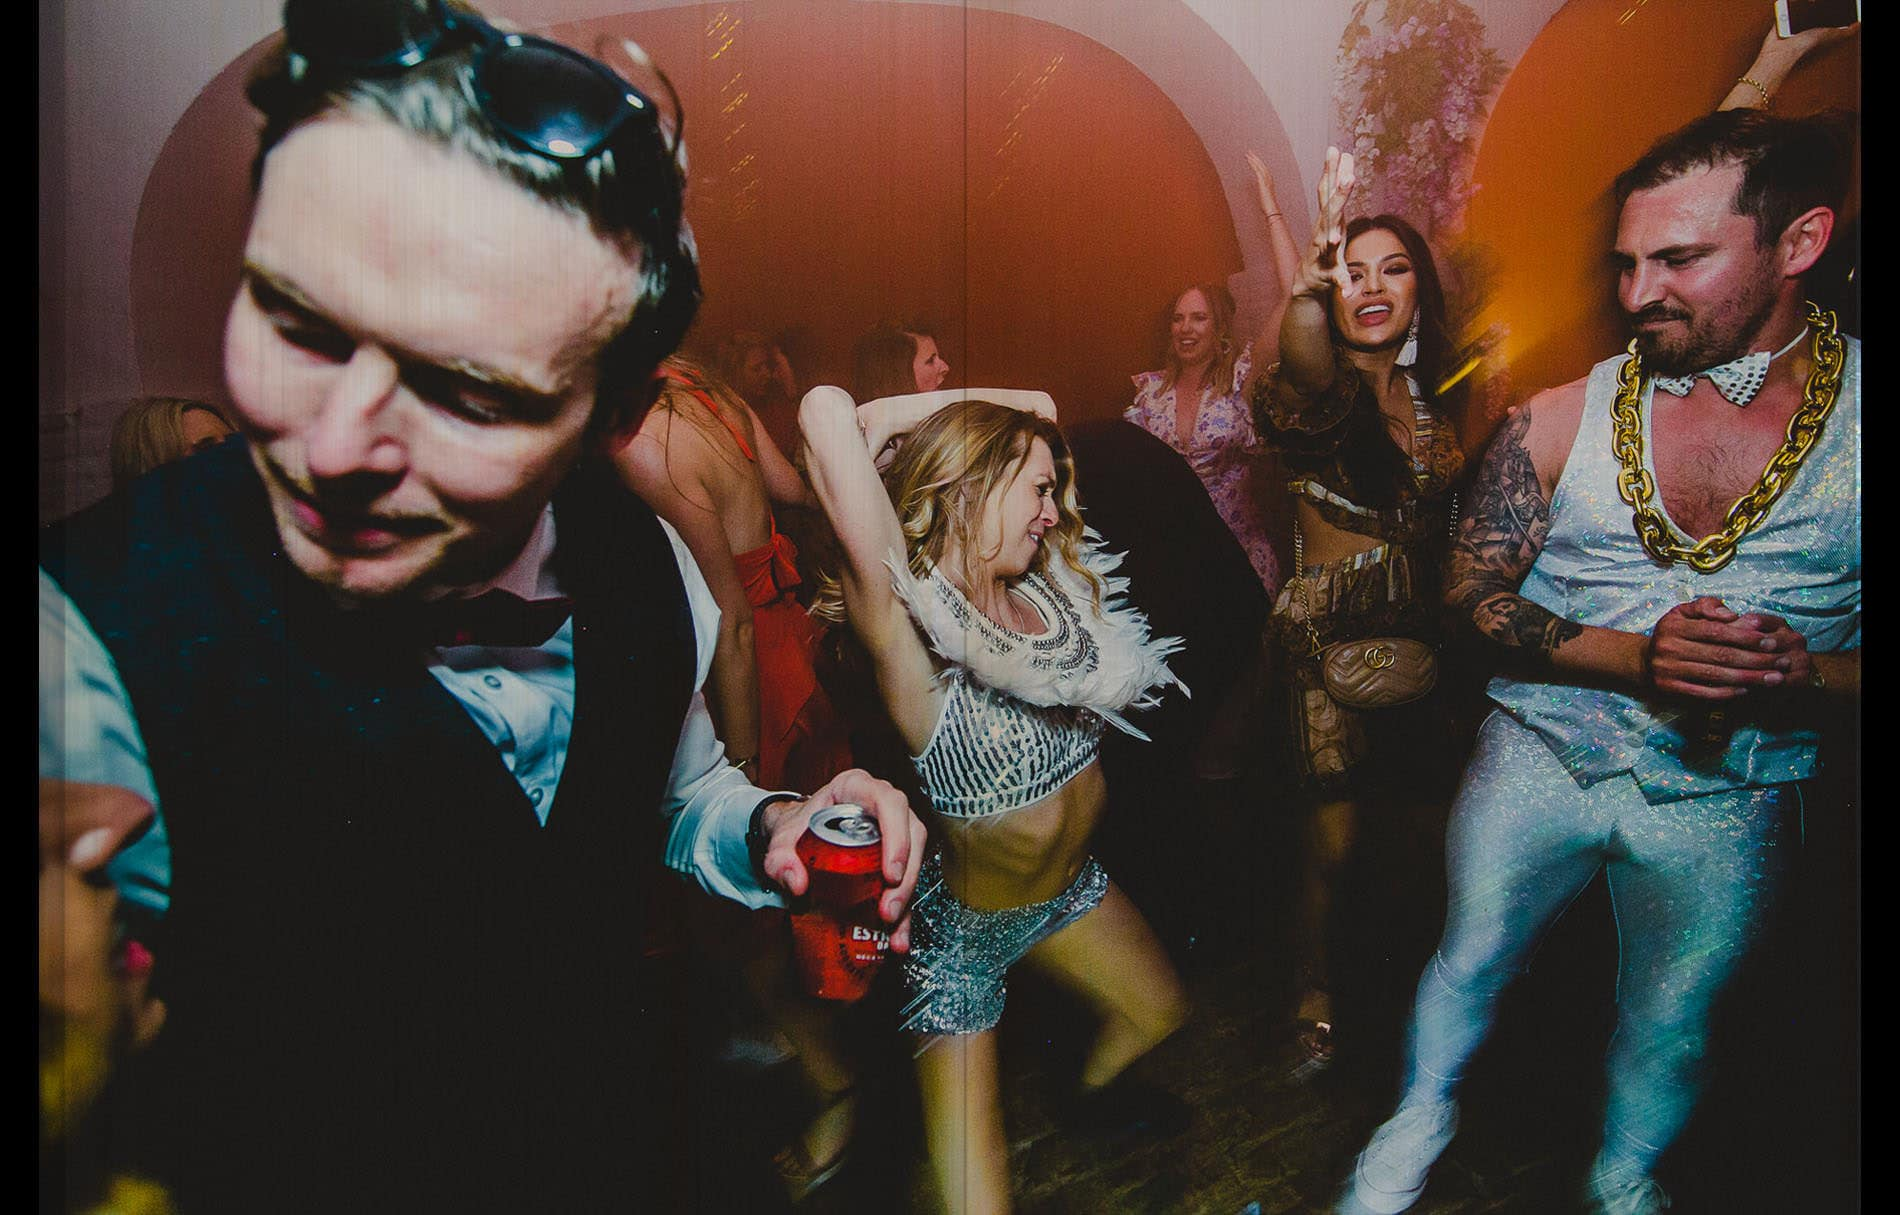 bride and groom dancing like crazy in a wild wedding party